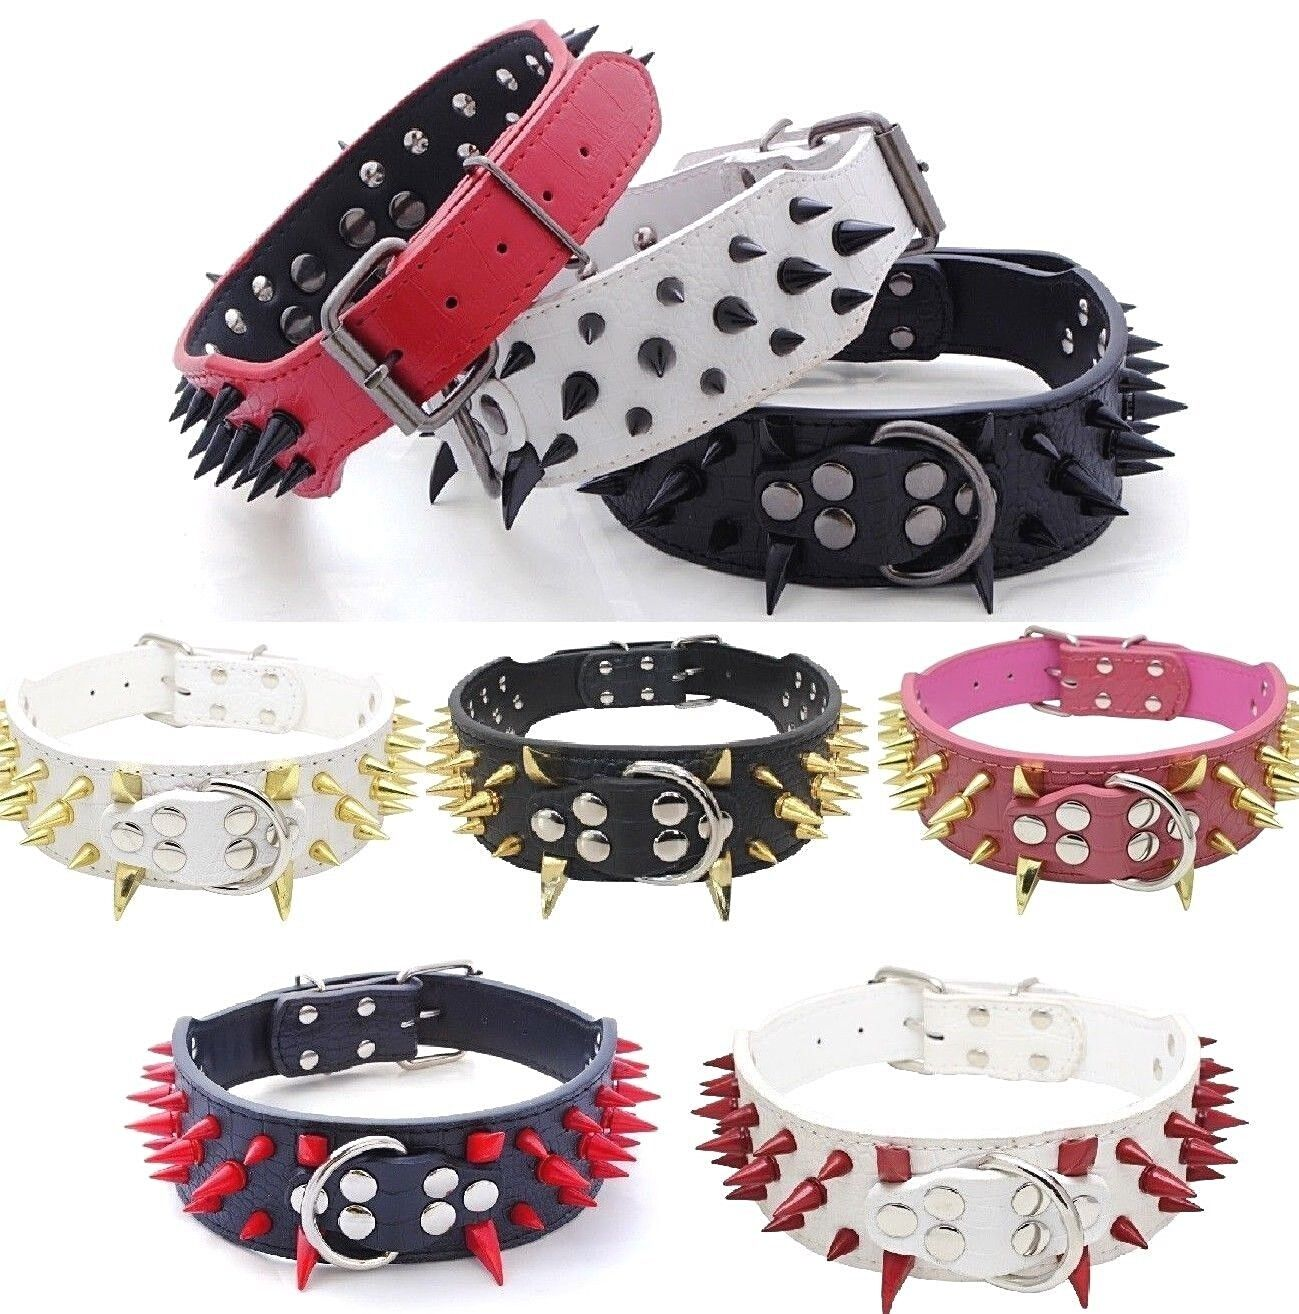 RAZOR SHARP Spiked Studded Rivet PU Leather Dog Pet Puppy Co